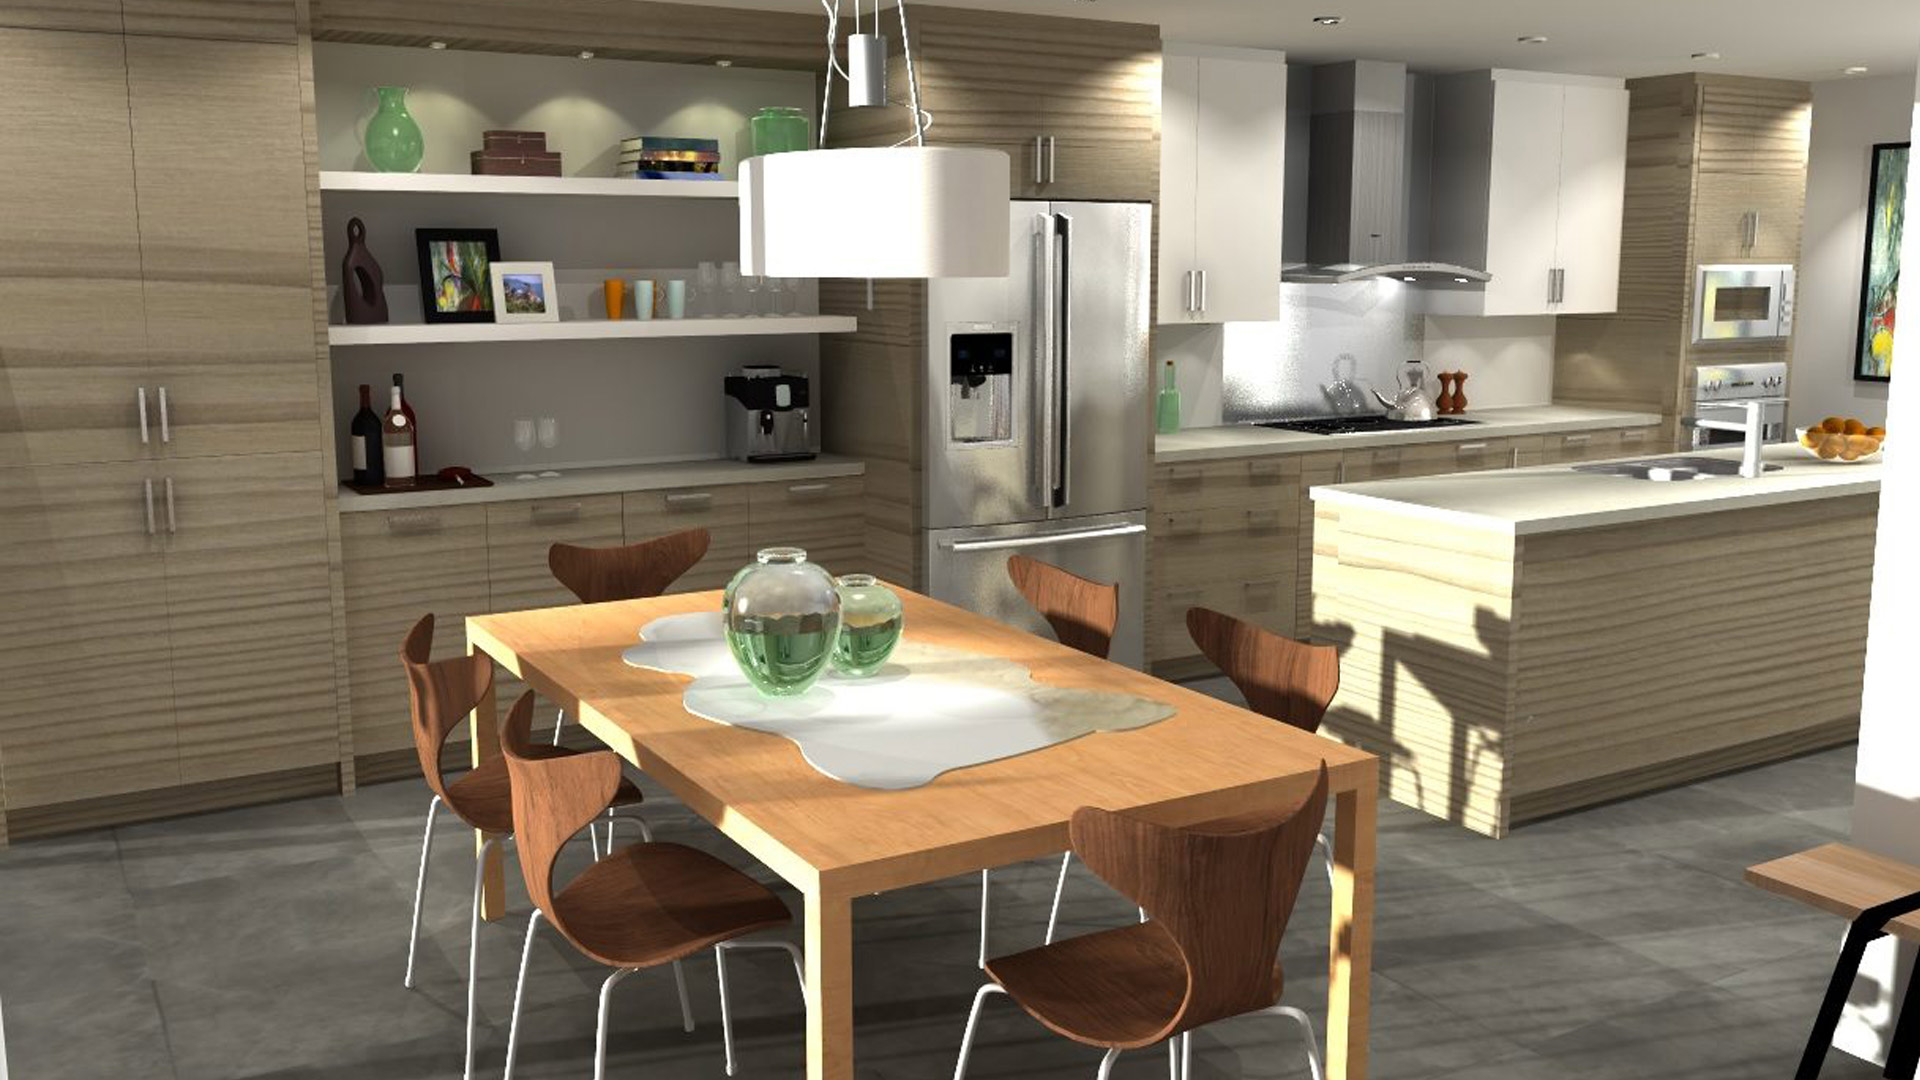 2020 Kitchen Design V9 Free Download Bathroom And Kitchen Design Software 2020 Design